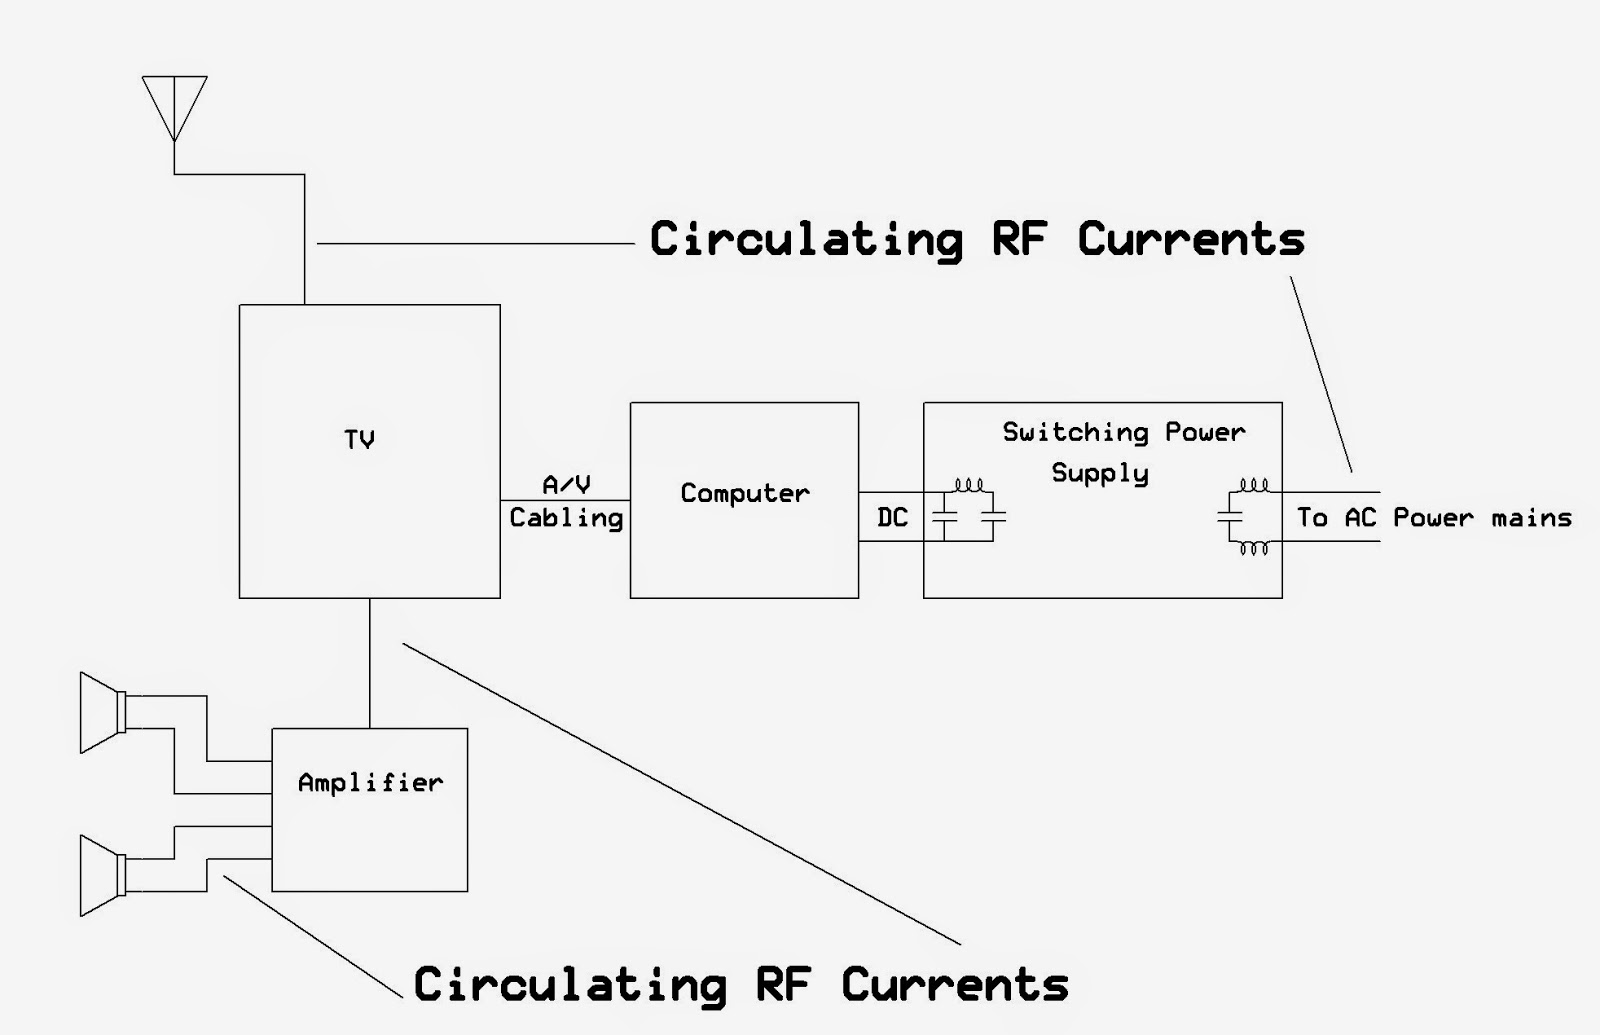 Ka7oeis Blog Completely Containing Switching Power Supply Rfi 1000w Dell Wiring Diagram Configuration Showing The Interconnects And Where Rf Circulating Currents Are Flowing Conduction Of Onto Ac Speaker